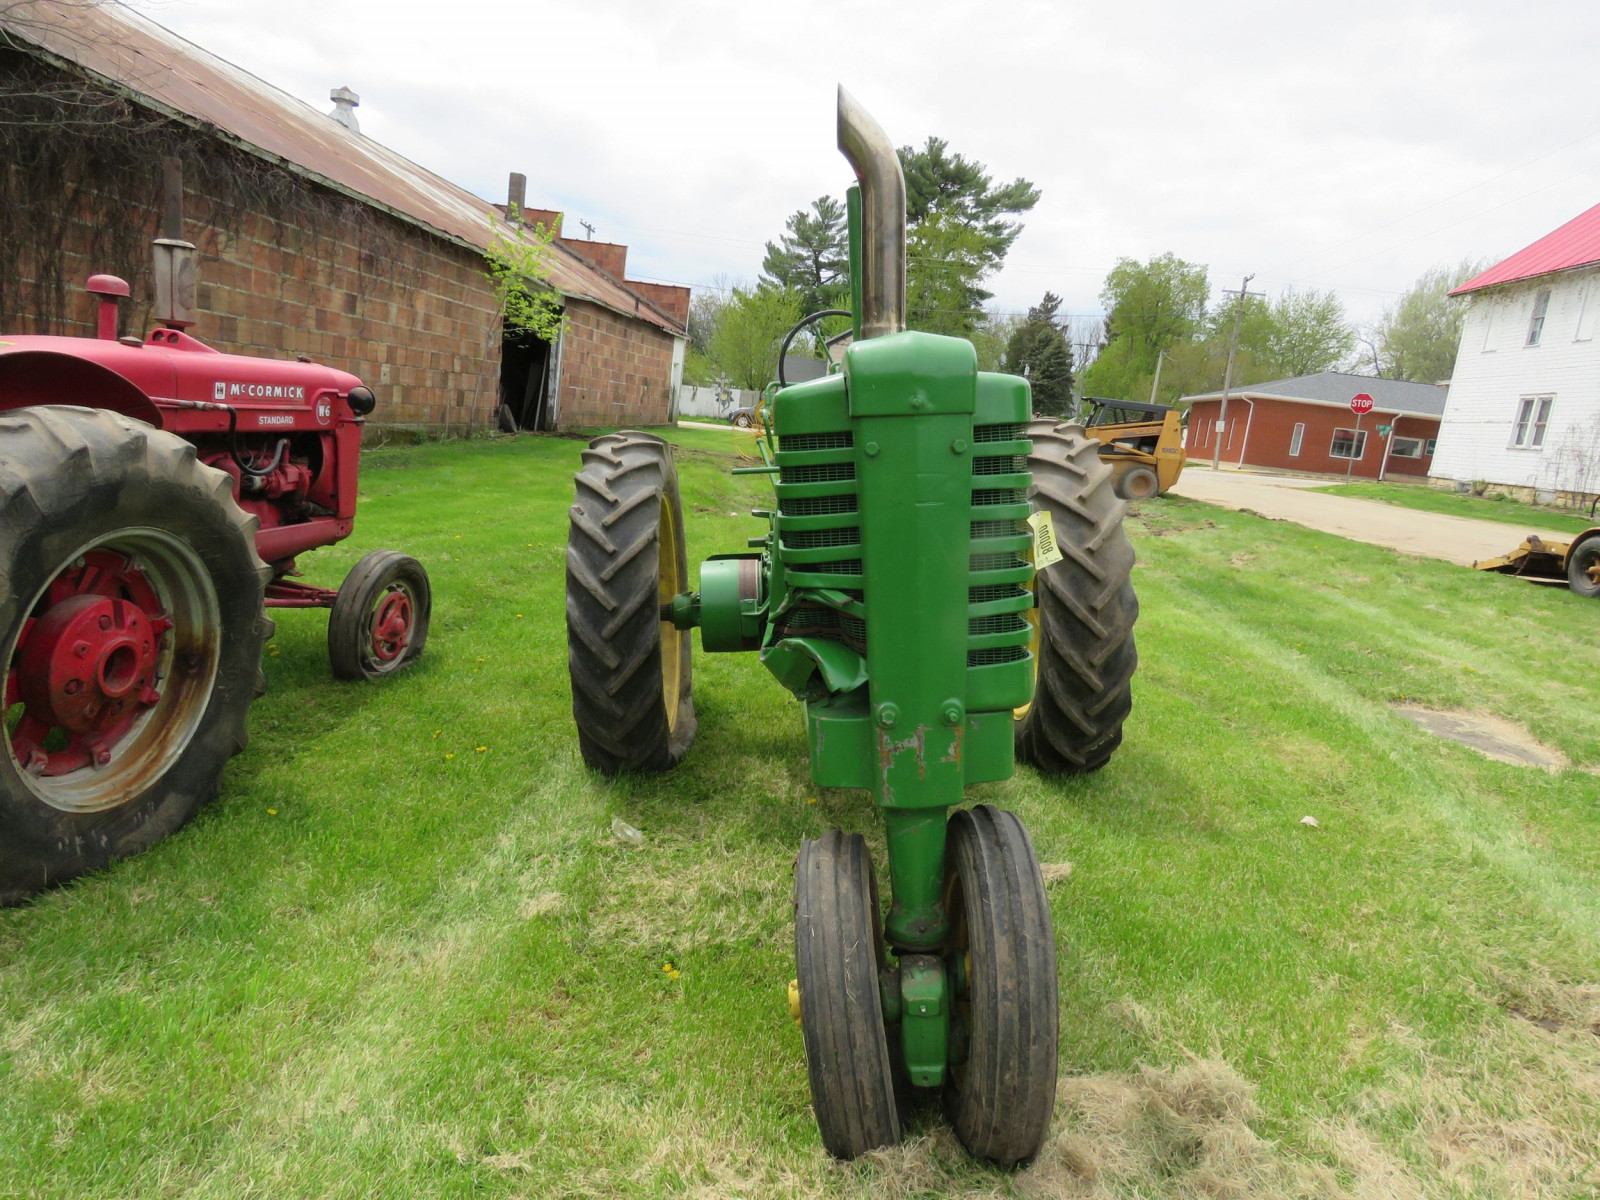 Styled John Deere A Tractor - Image 2